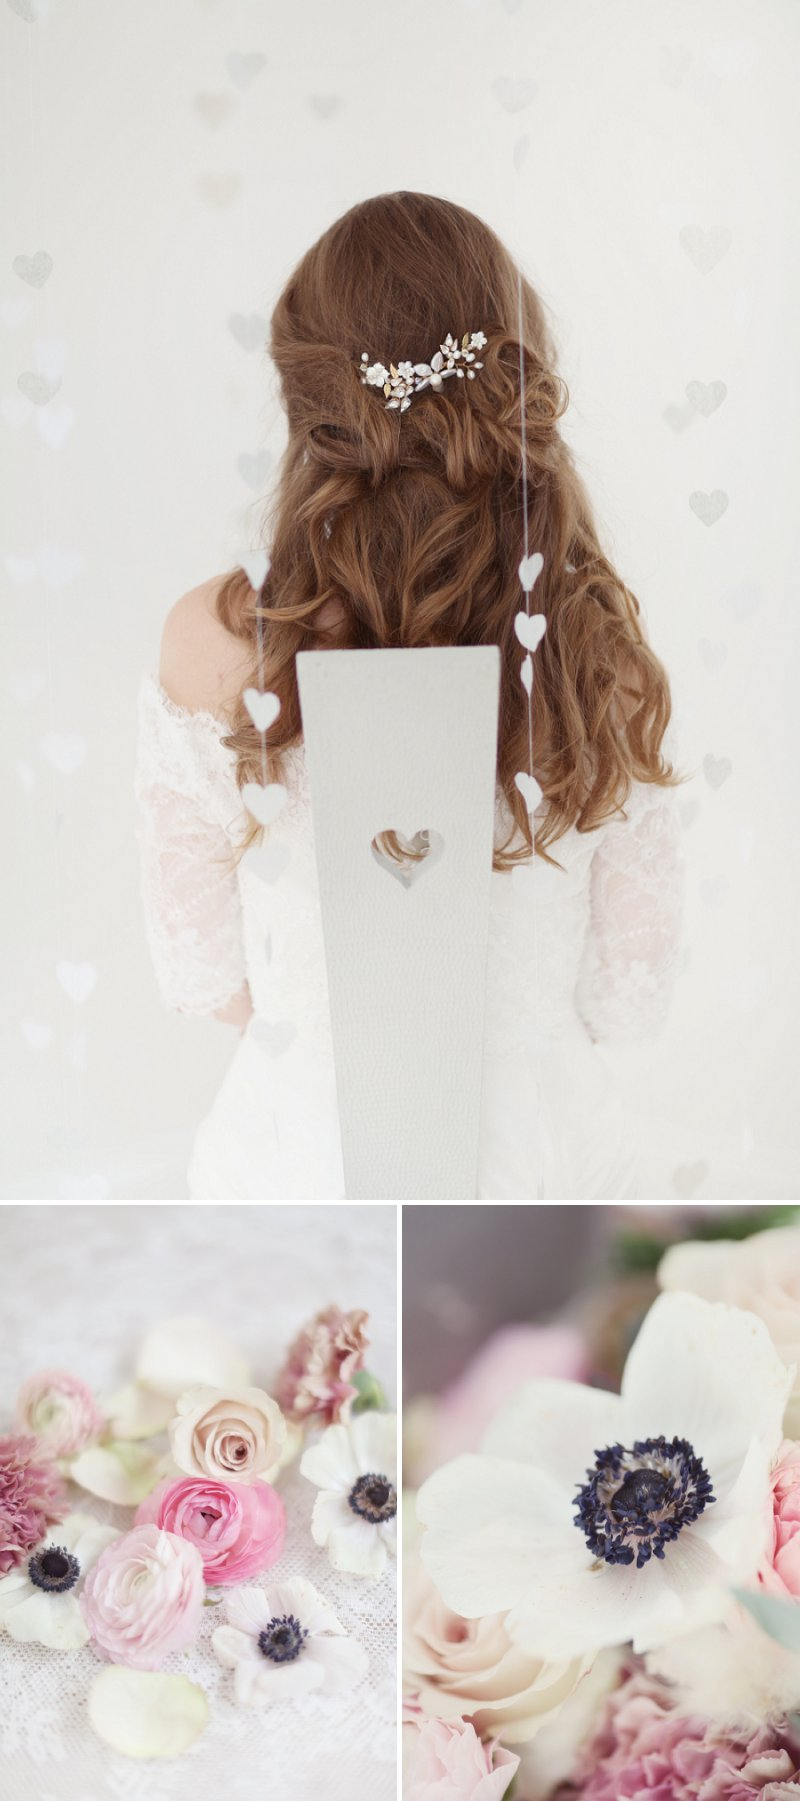 Pastel Valentines Day Inspired Bridal Shoot Featuring Hair Accessories From Corrine Smith Design With Flowers From I Heart Flowers And Images By Eva Sanders Photography 4